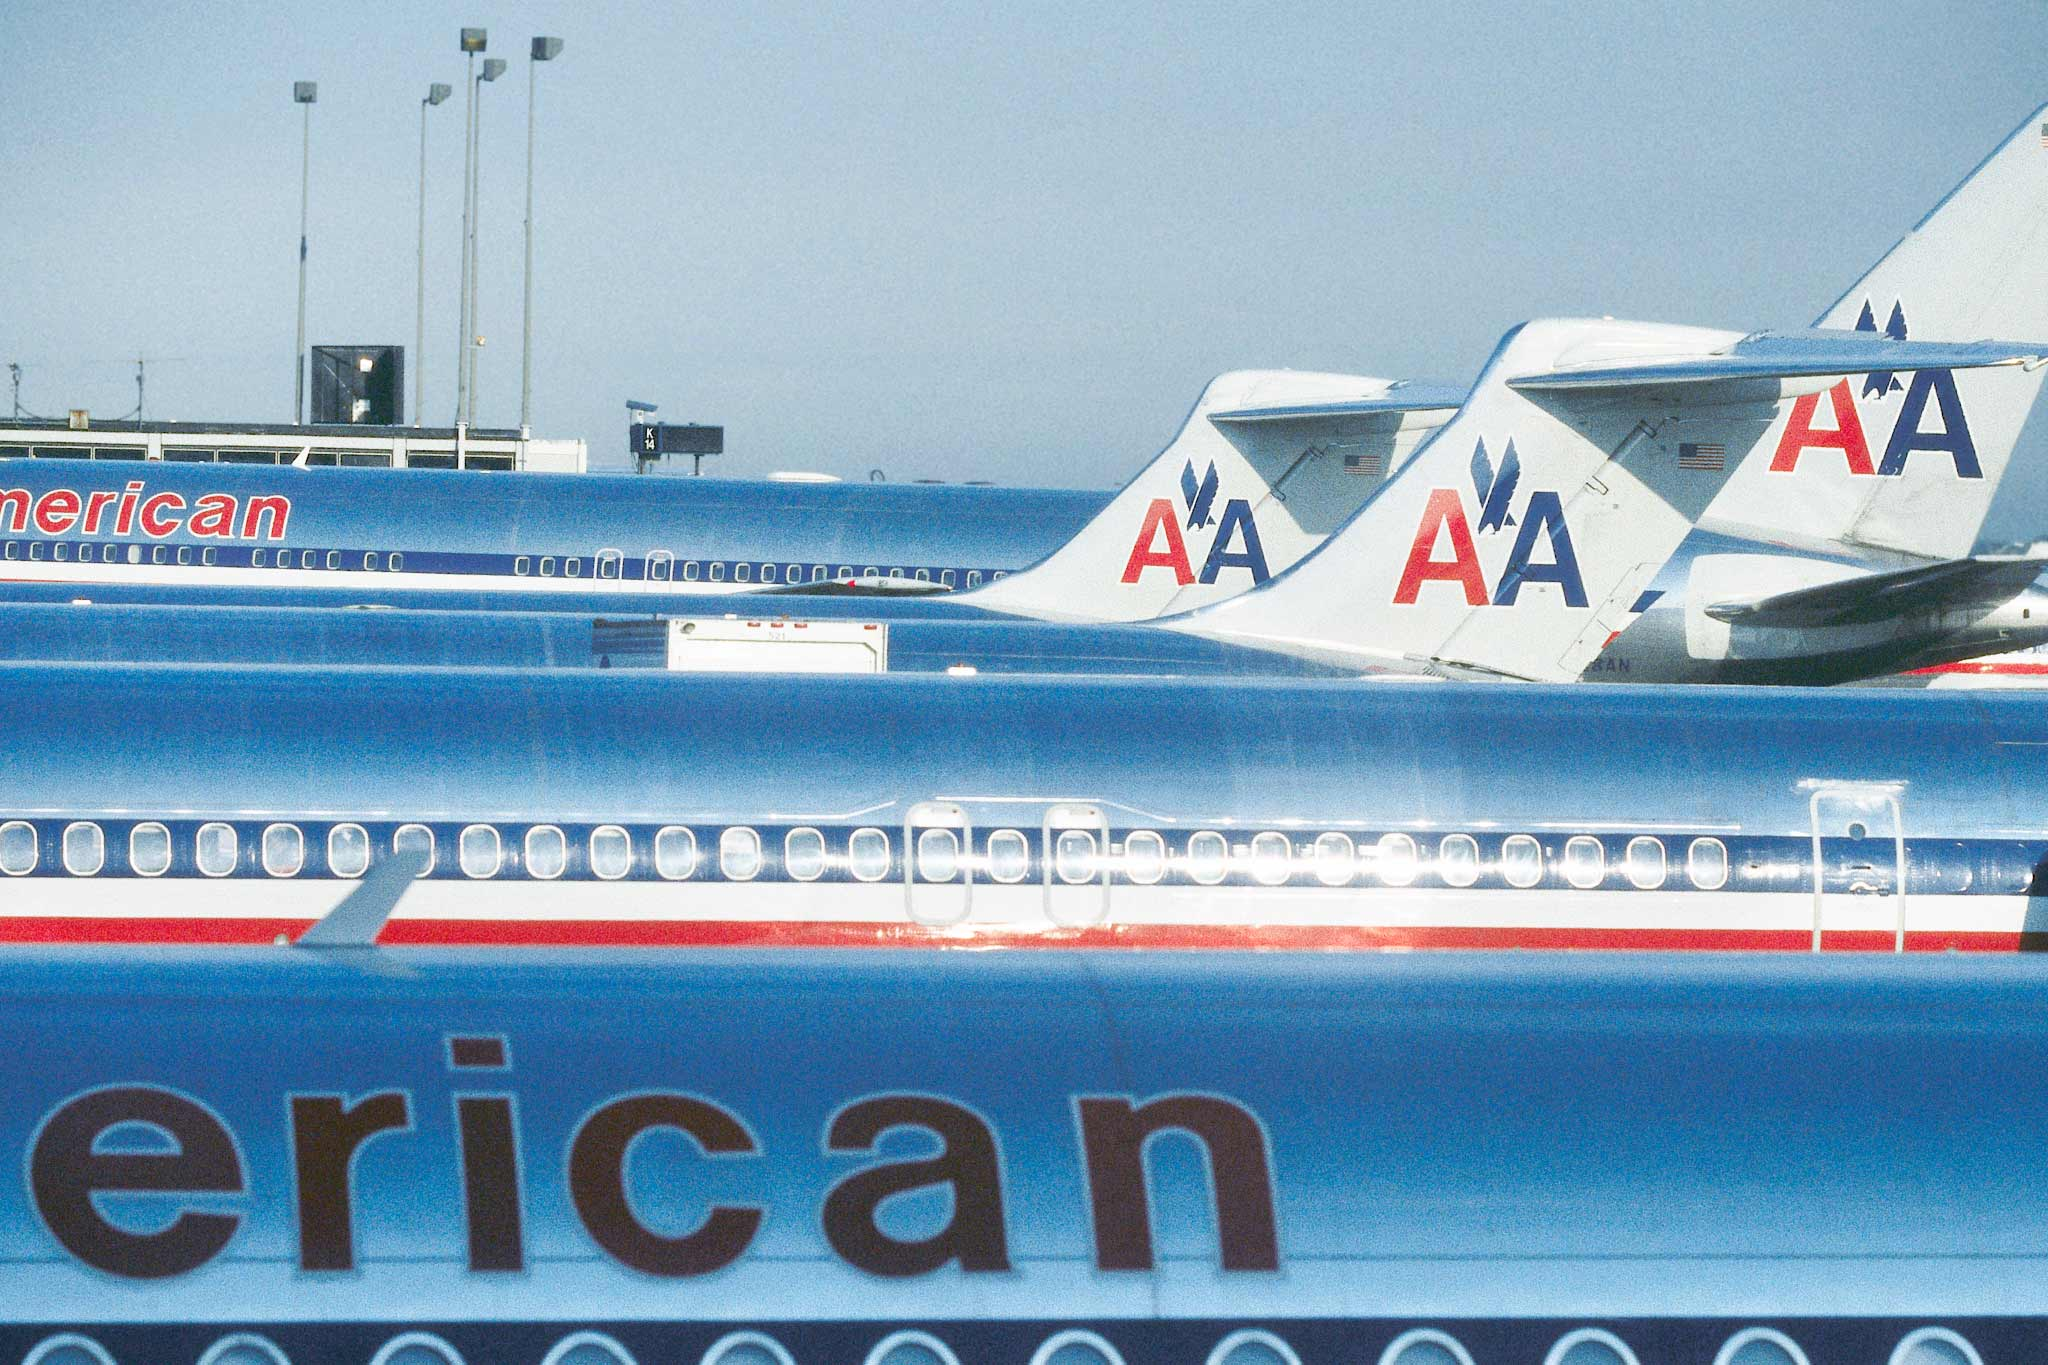 After a long love-hate relationship, American Air says